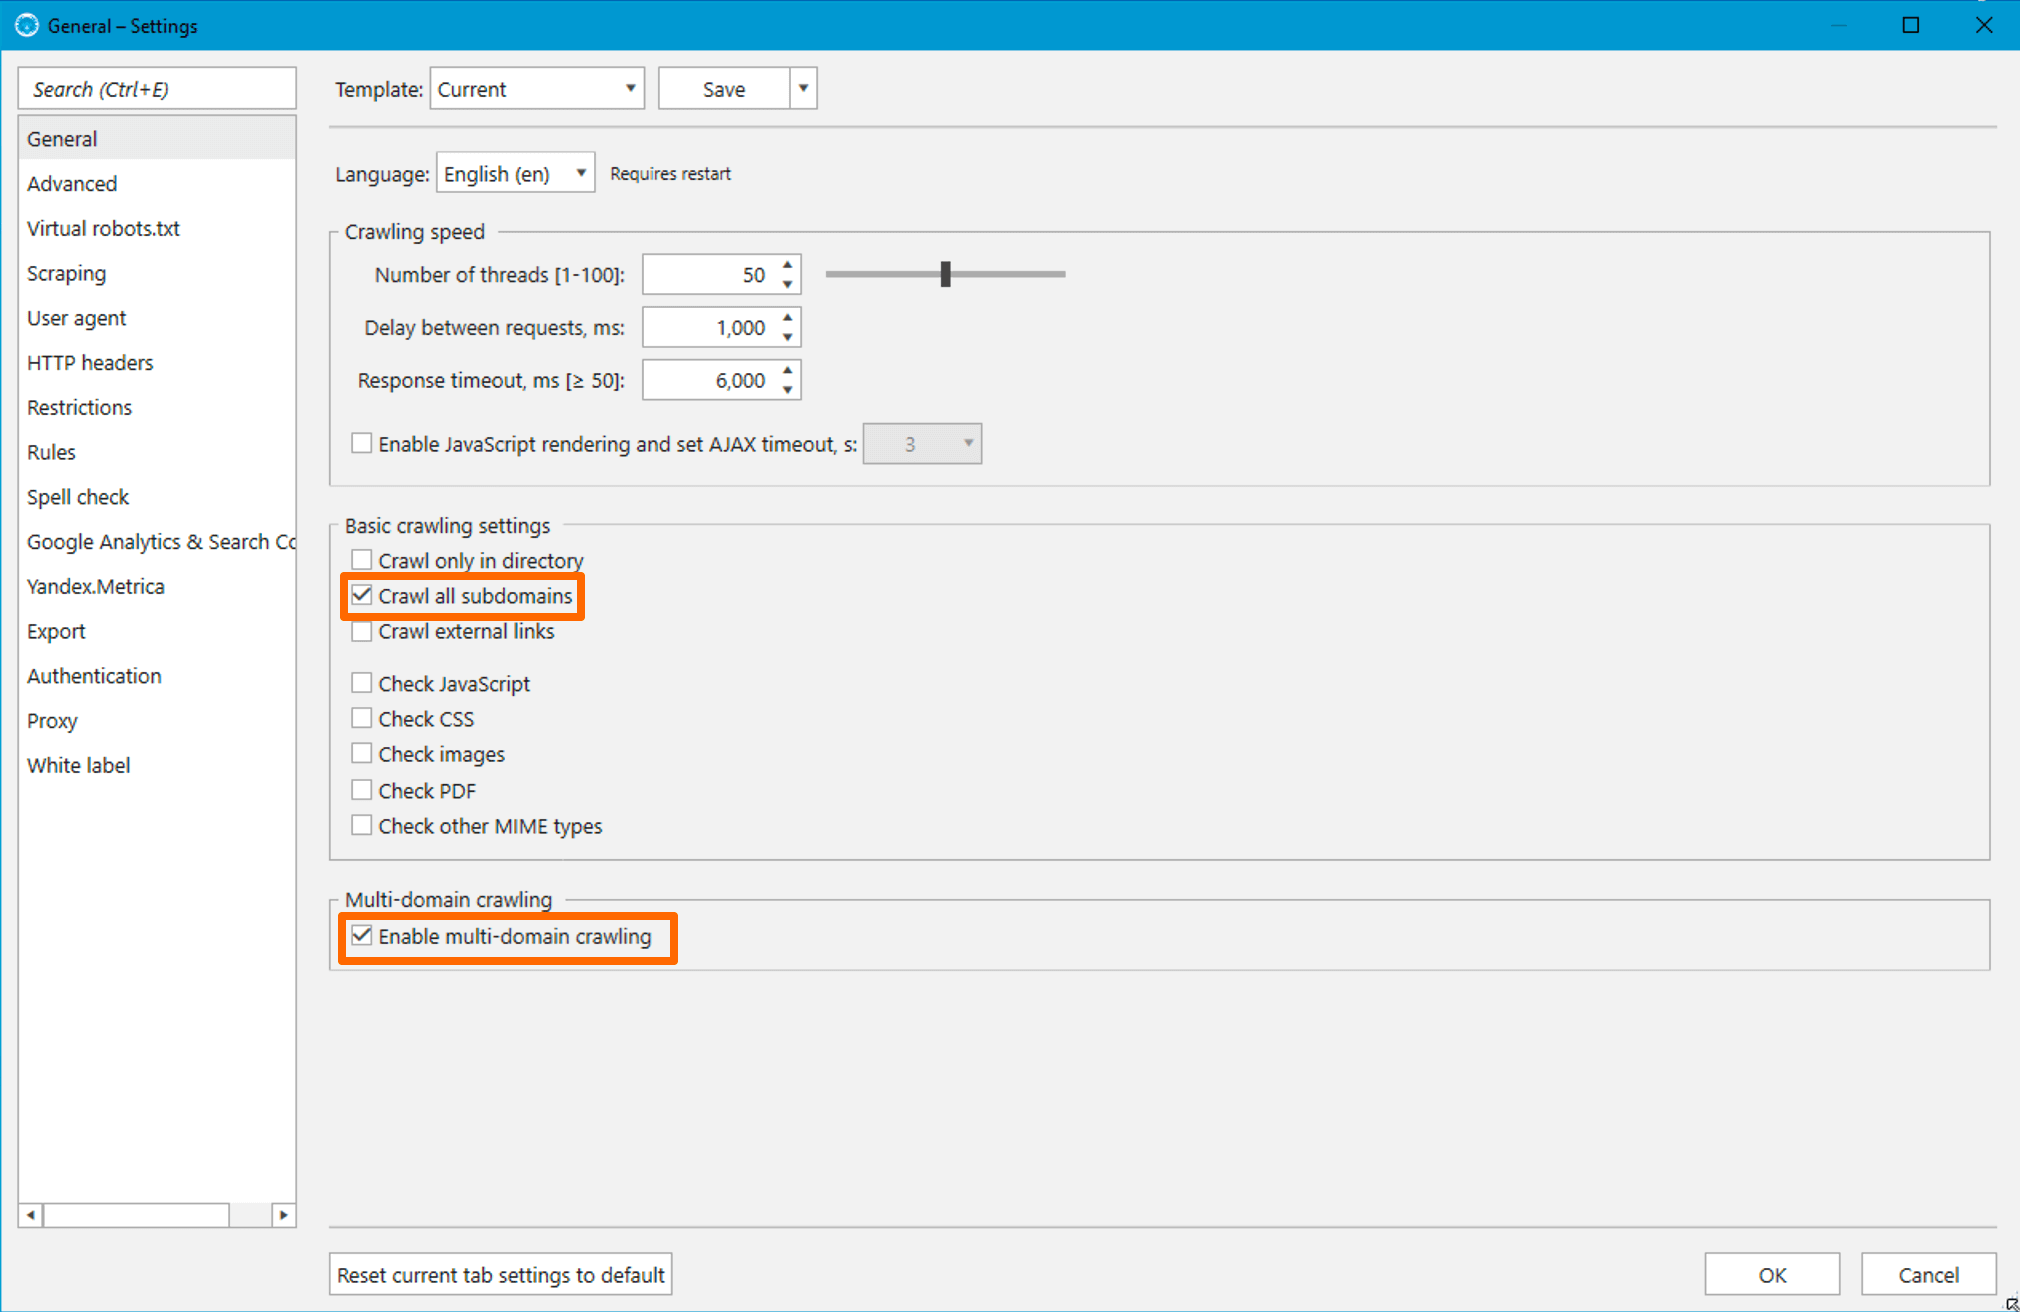 How to enable consindering of all subdomains as internal and multi-domain crawling in Netpeak Spider